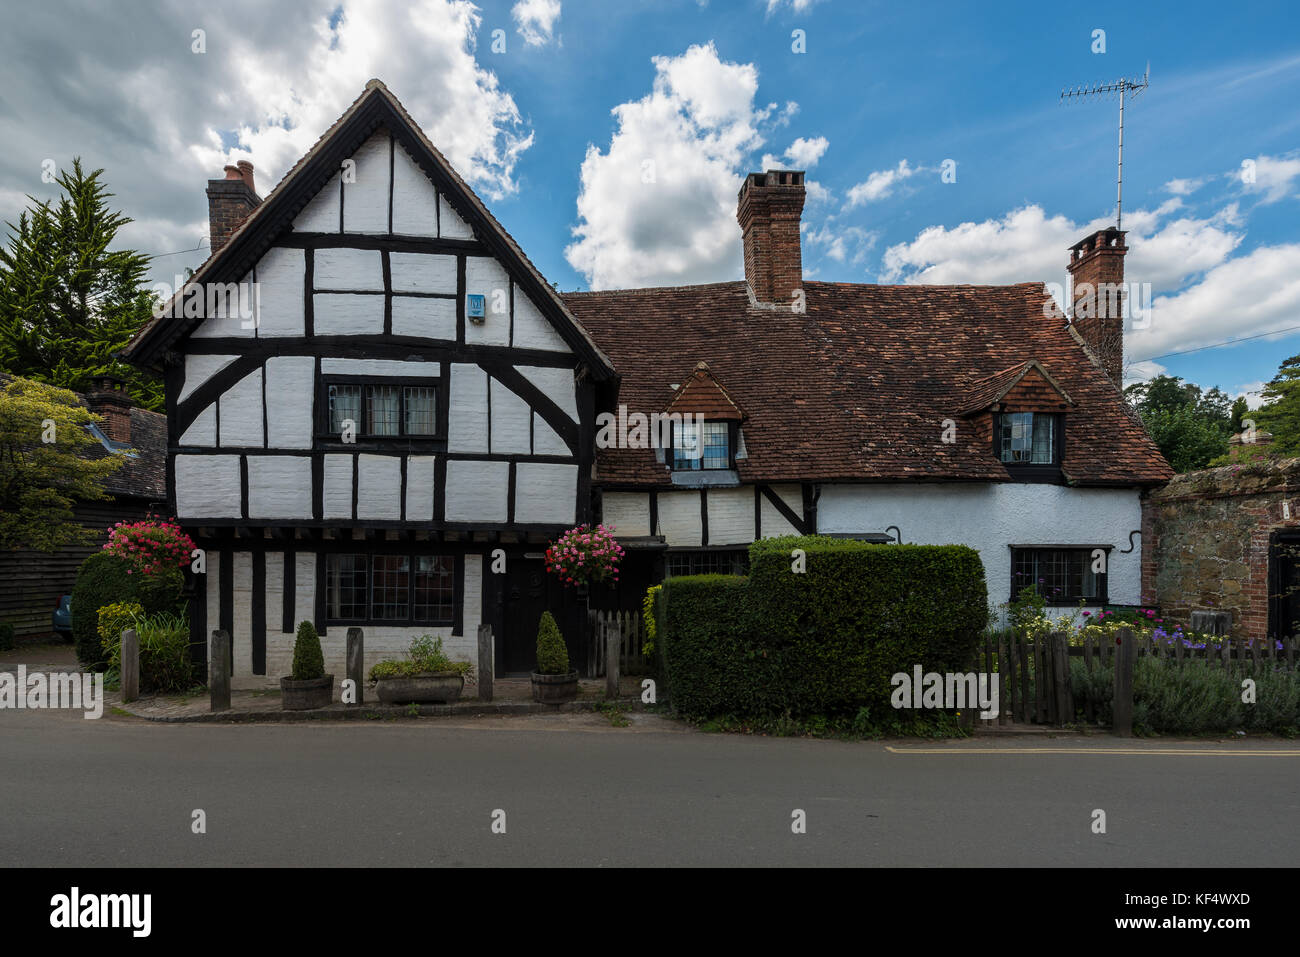 Traditional houses of the village of Shere in the Guildford district of Surrey, United Kingdom Stock Photo